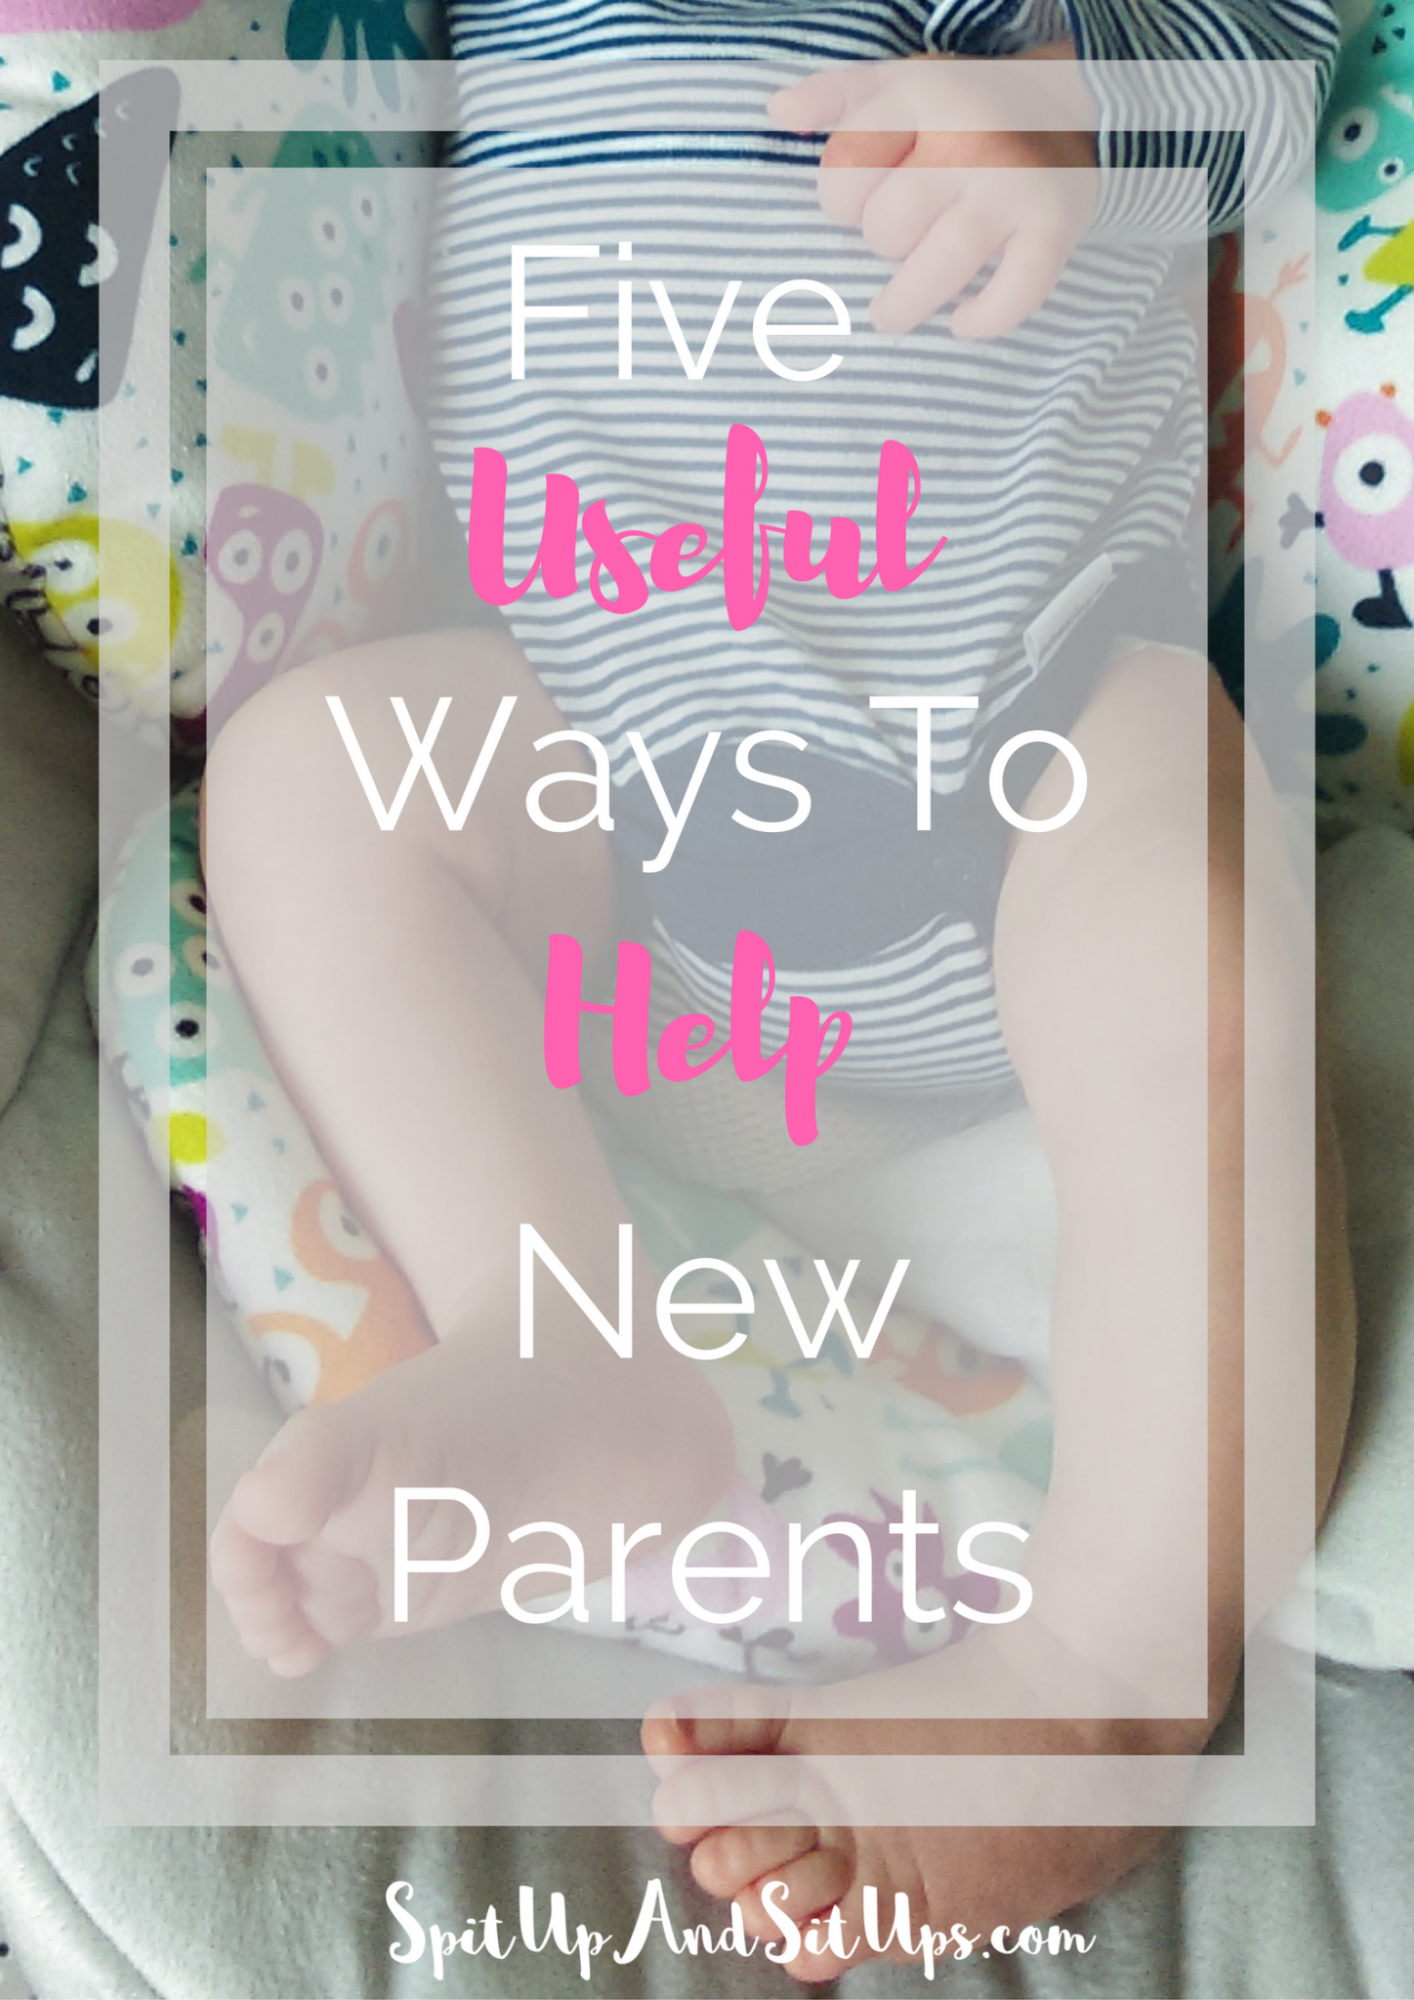 useful ways to help new parents, how to help a new mom, how to help new parents when baby arrives, how to help new parents, advice for new parents, new parent must haves